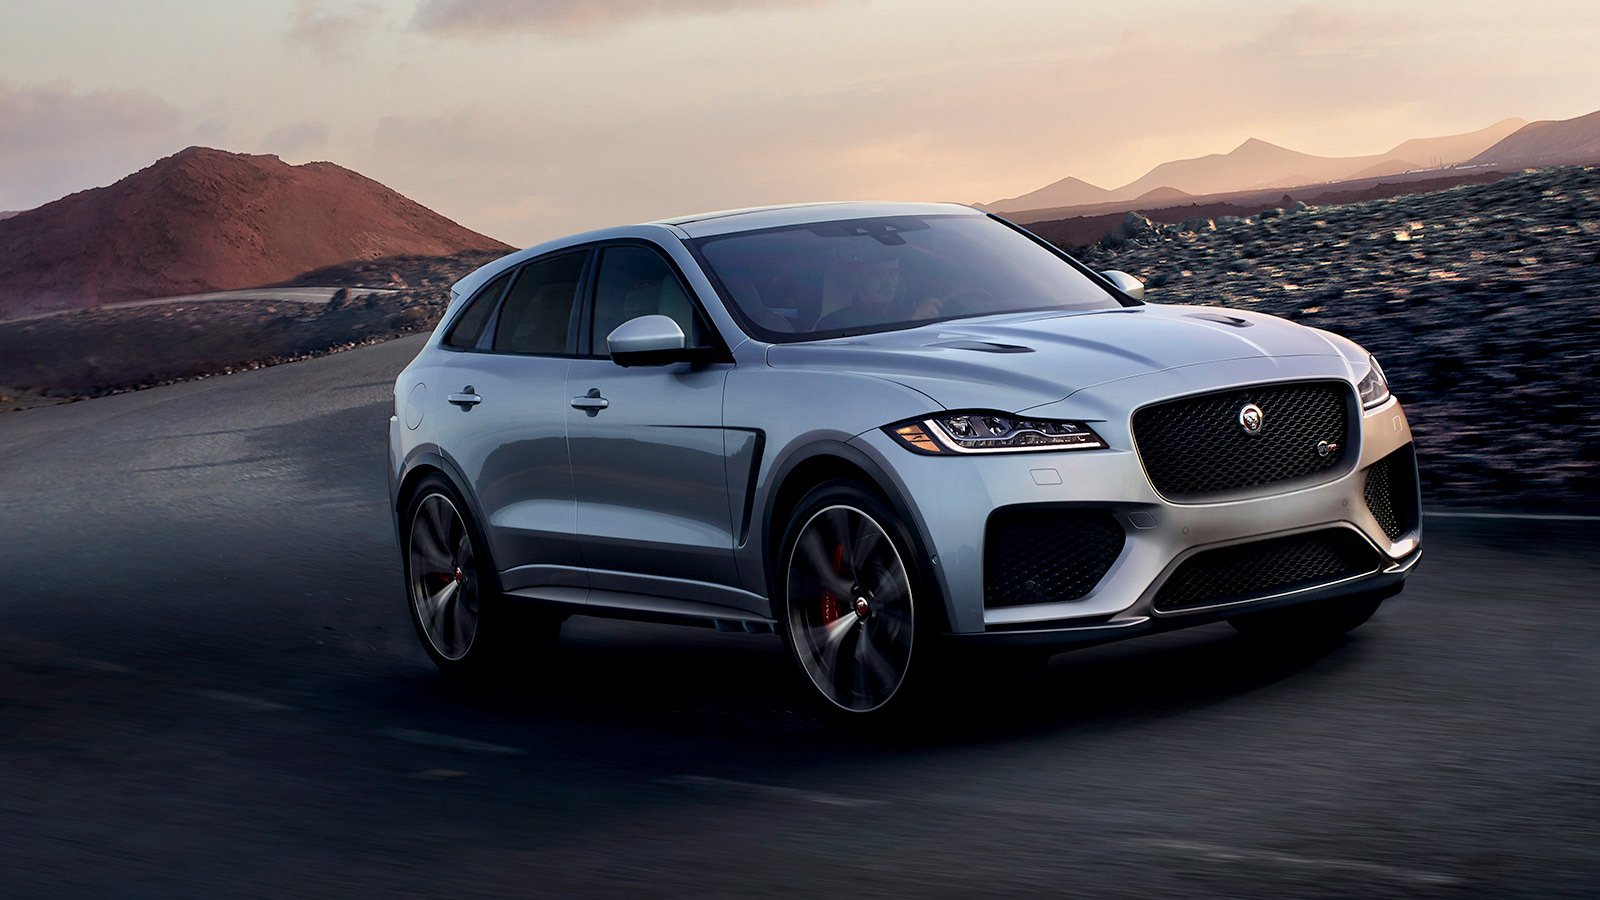 Silver F-PACE SVR driving in rural area.